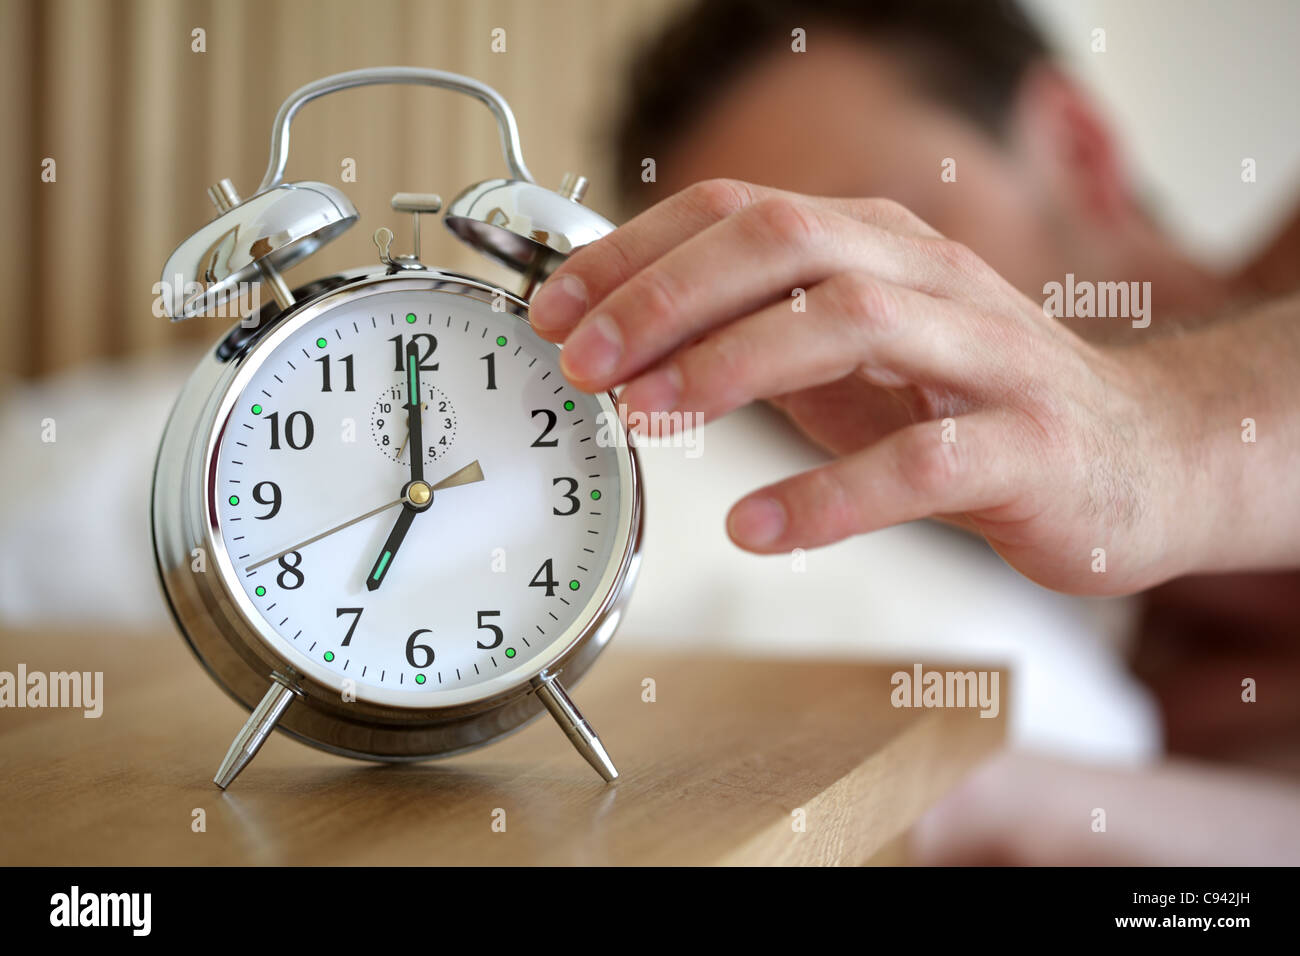 Turning off an alarm clock - Stock Image